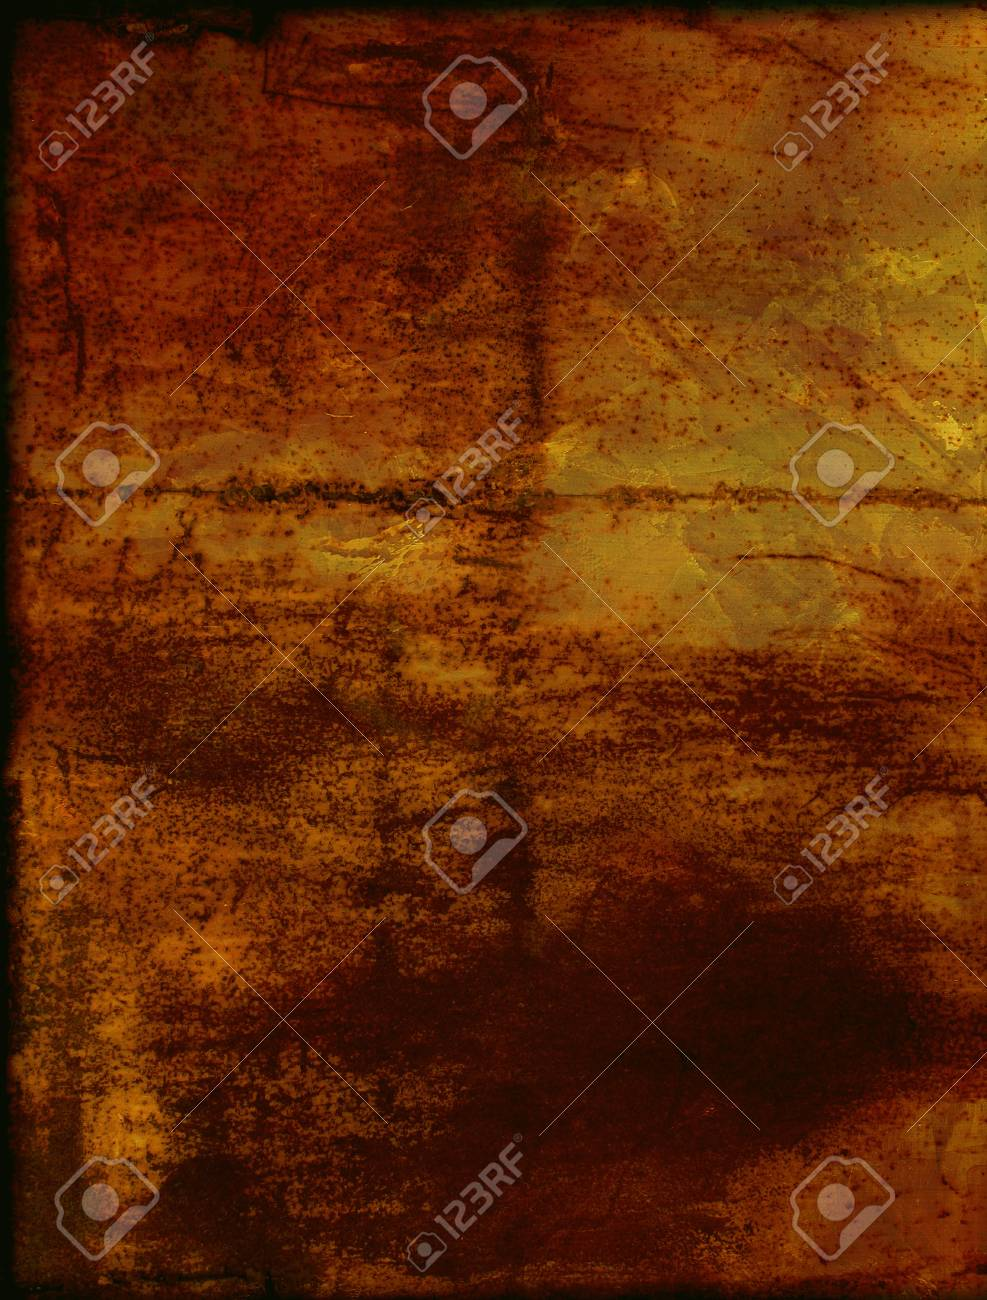 Grunge background with rusty metal texture Stock Photo - 16075121